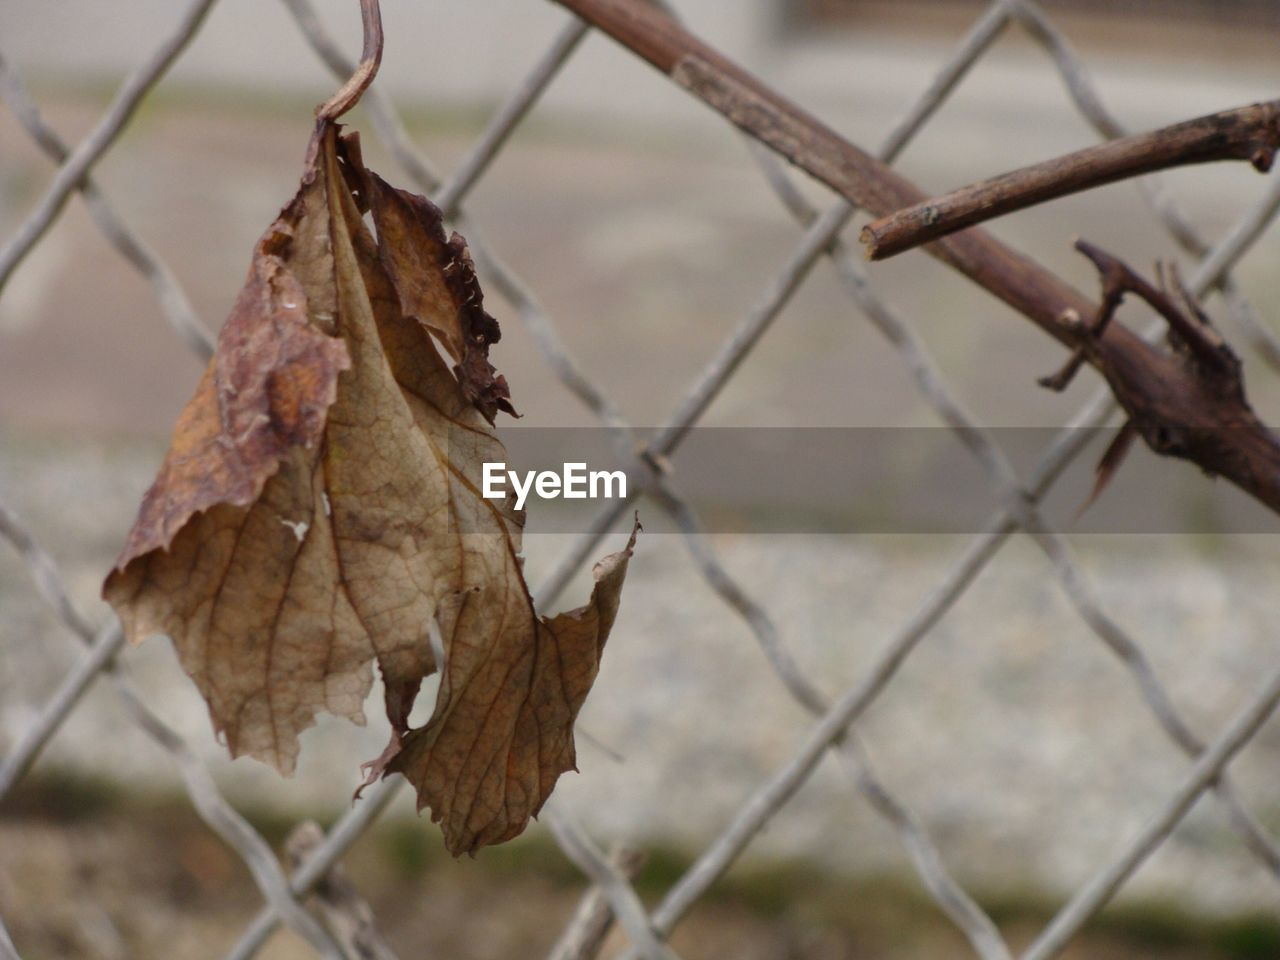 Dry Leaf Against Chainlink Fence